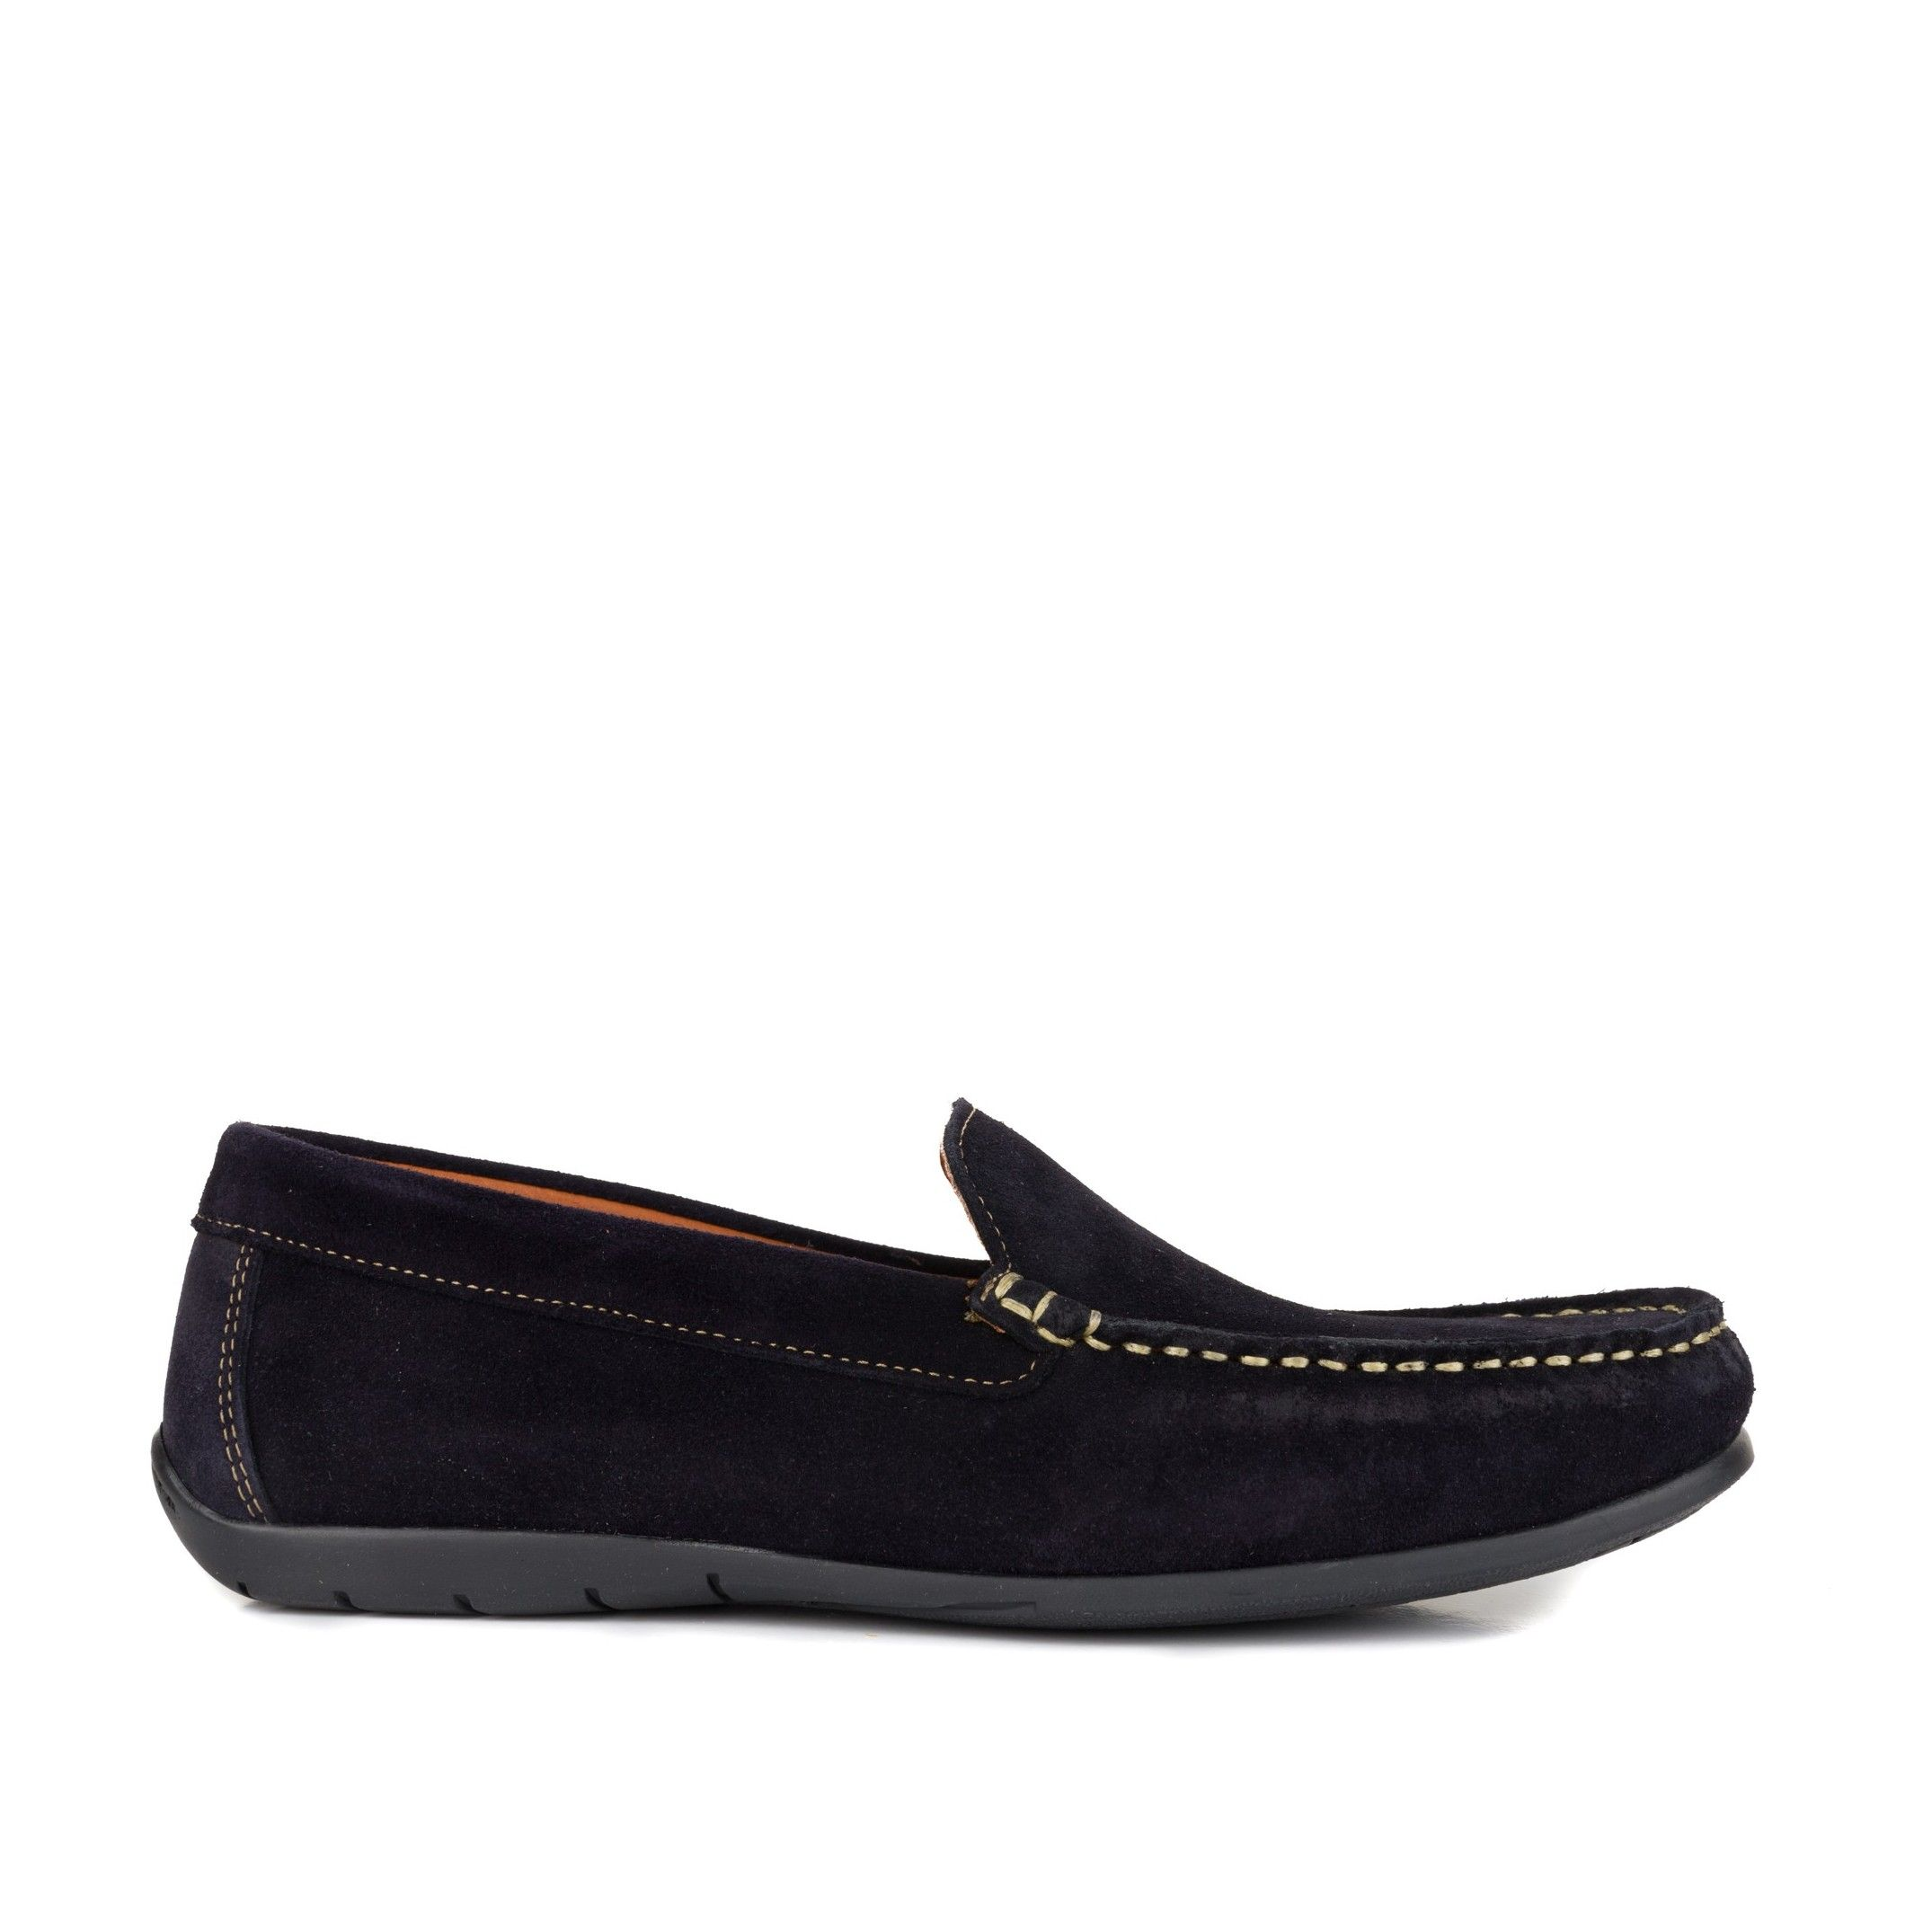 SMOOTH MOCCASIN